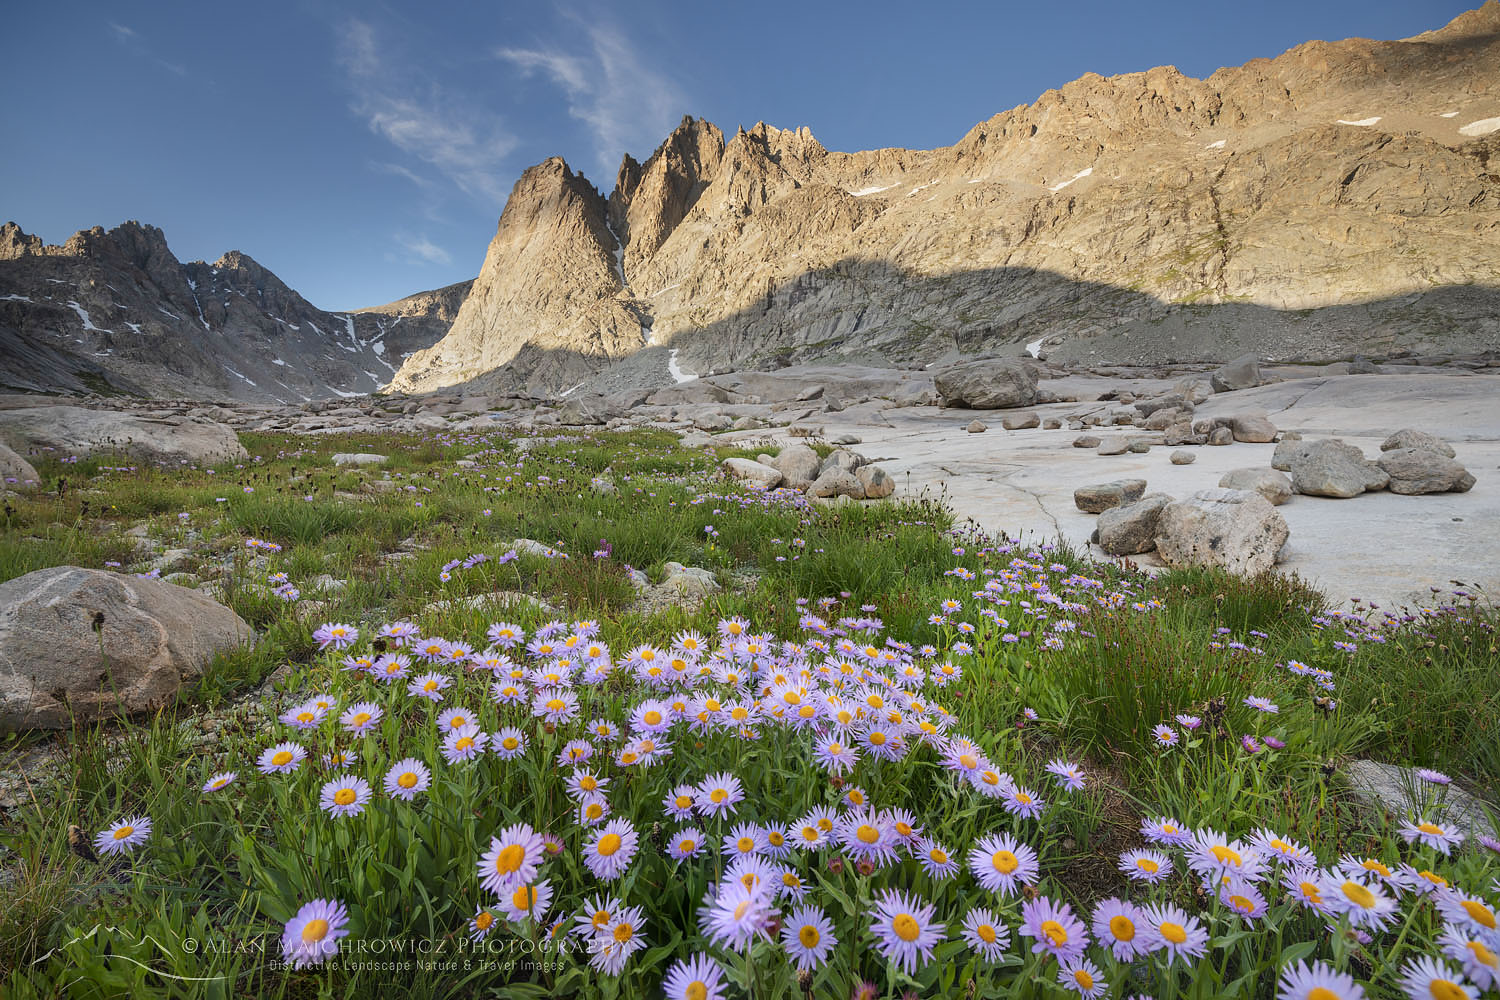 Mount Helen amd field of purple Asters growing in Upper Titcomb Basin, Bridger Wilderness, Wind River Range Wyoming